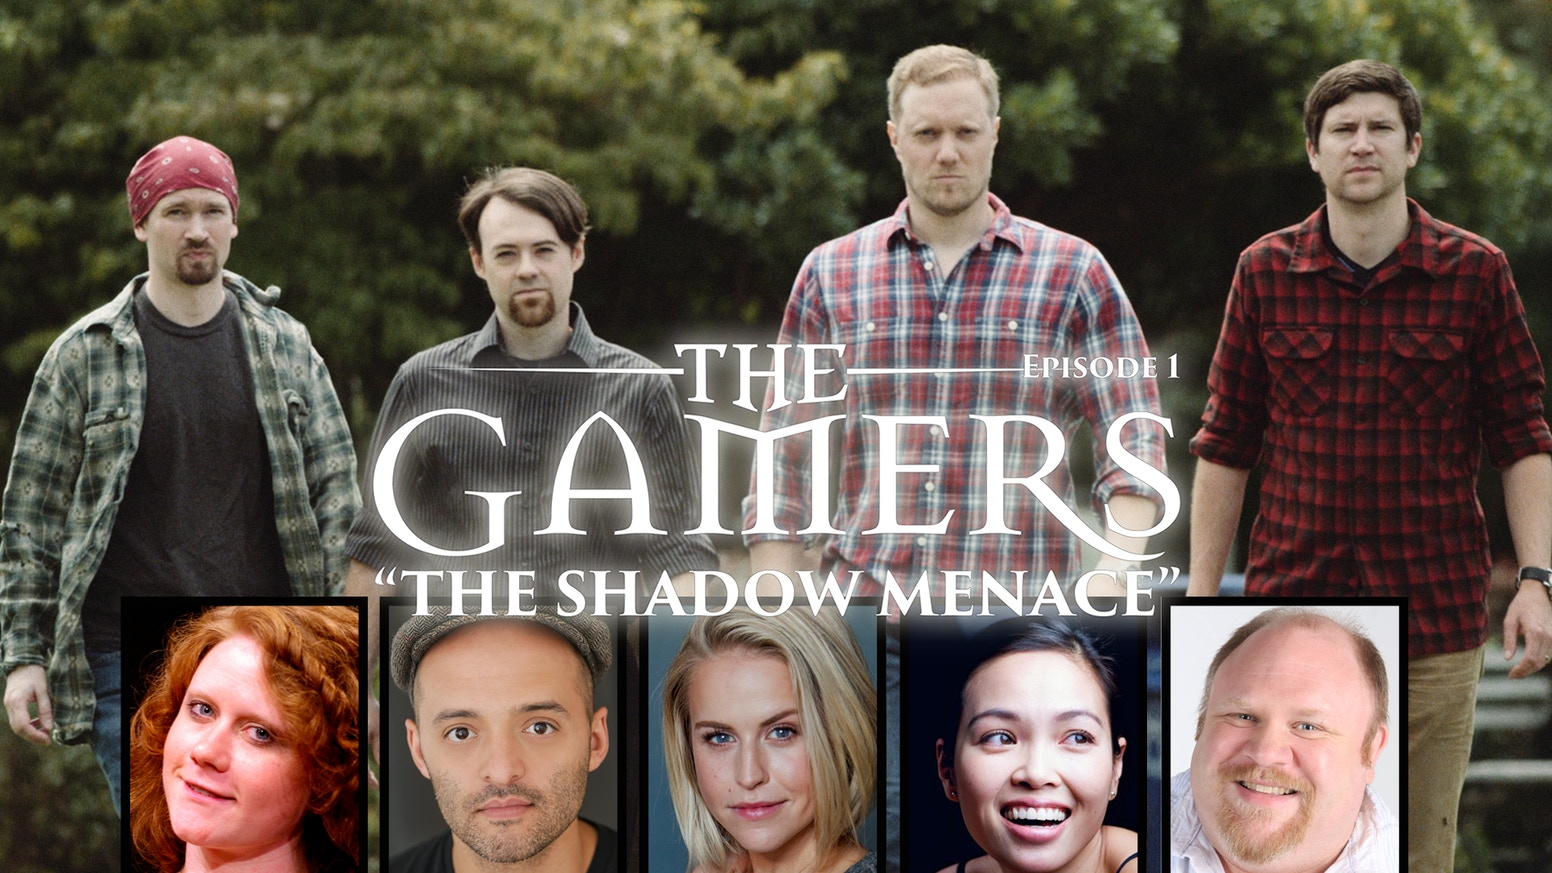 The classic tabletop gaming comedy returns for a new adventure, based on Matt Vancil's THE GAMERS. This campaign is over, but funding for future episodes continues on Patreon!